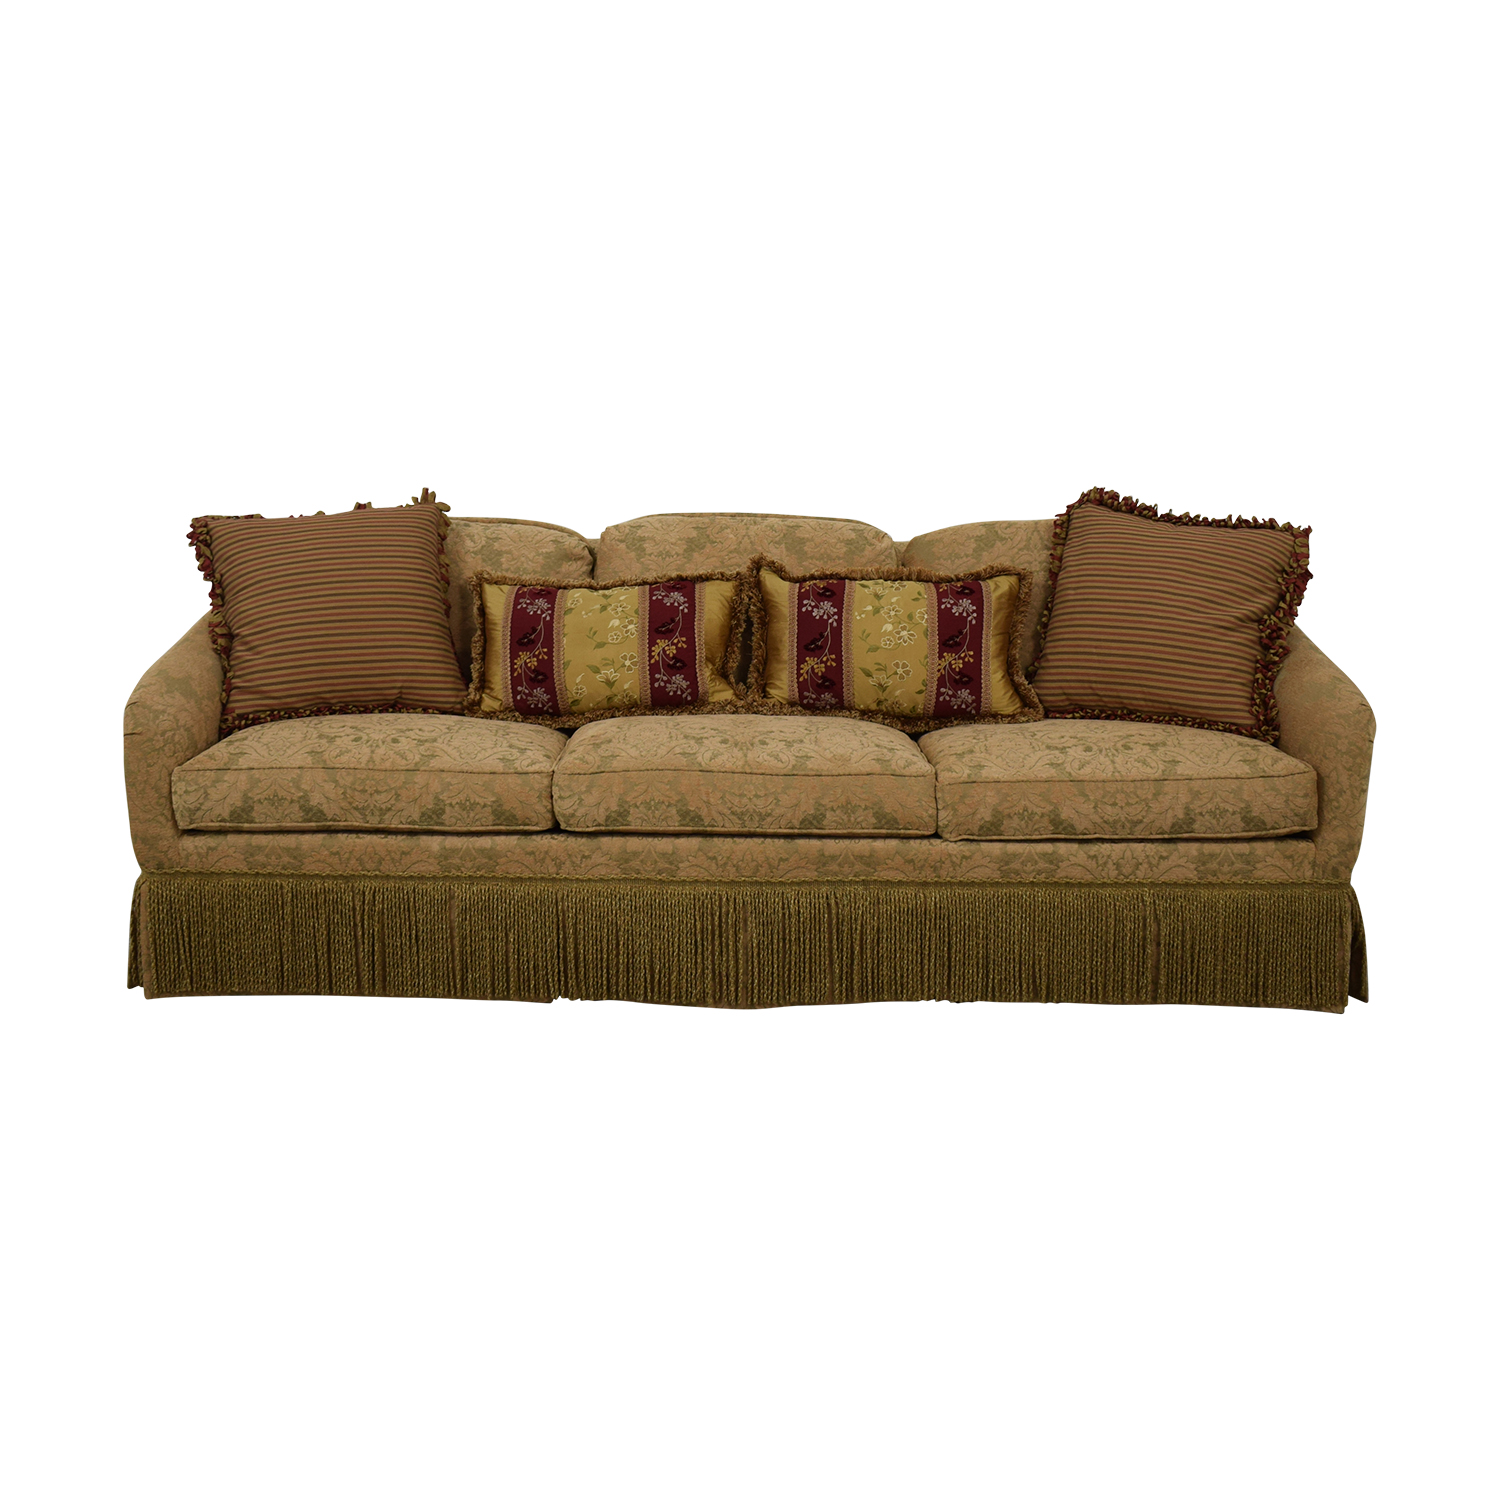 Hickory Chair Hickory Chair Three-Cushion Floral Sofa price